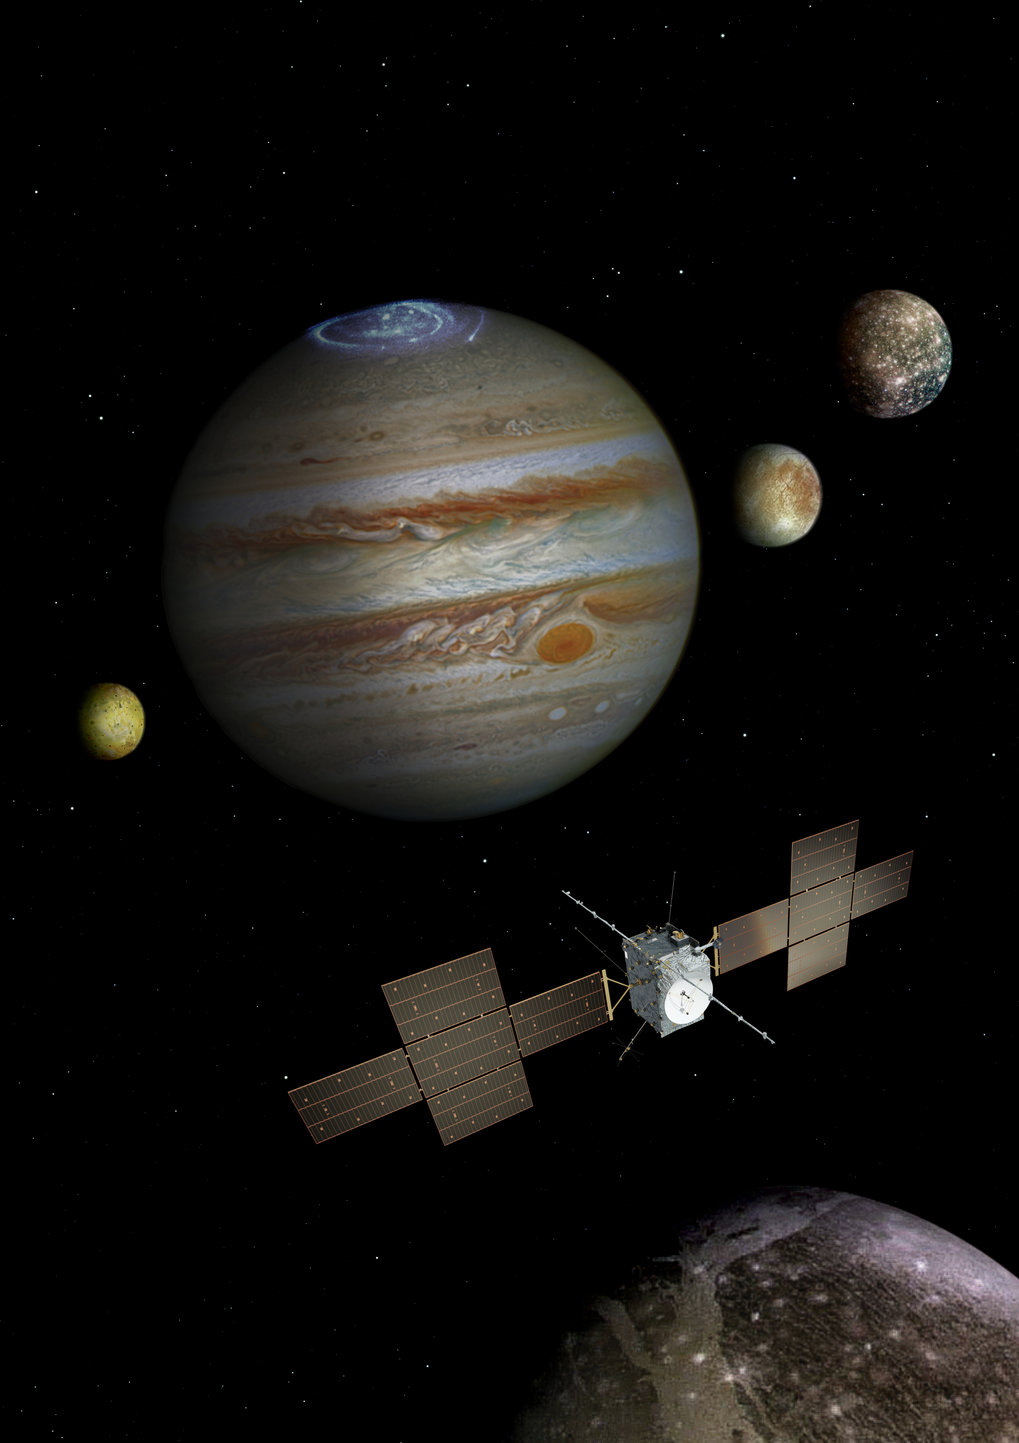 The ESA-Mission JUICE shall explore the Jovian system. To be launched in 2022 the spacecraft will arrive at Jupiter in 2030. After some initial flybys at the moons Europa, Ganymede, and Callisto JUICE will intensively study the Jovian atmosphere and the plasma environment (Jovian Magnetosphere). The main phase of the mission is dedicated to the moon Ganymede since JUICE will for the very first time ever in history enter in an orbit around an outer planet's moon and study the moon's surtface, its subsurface ocean, and its interaction with the Jovian magnetosphere.